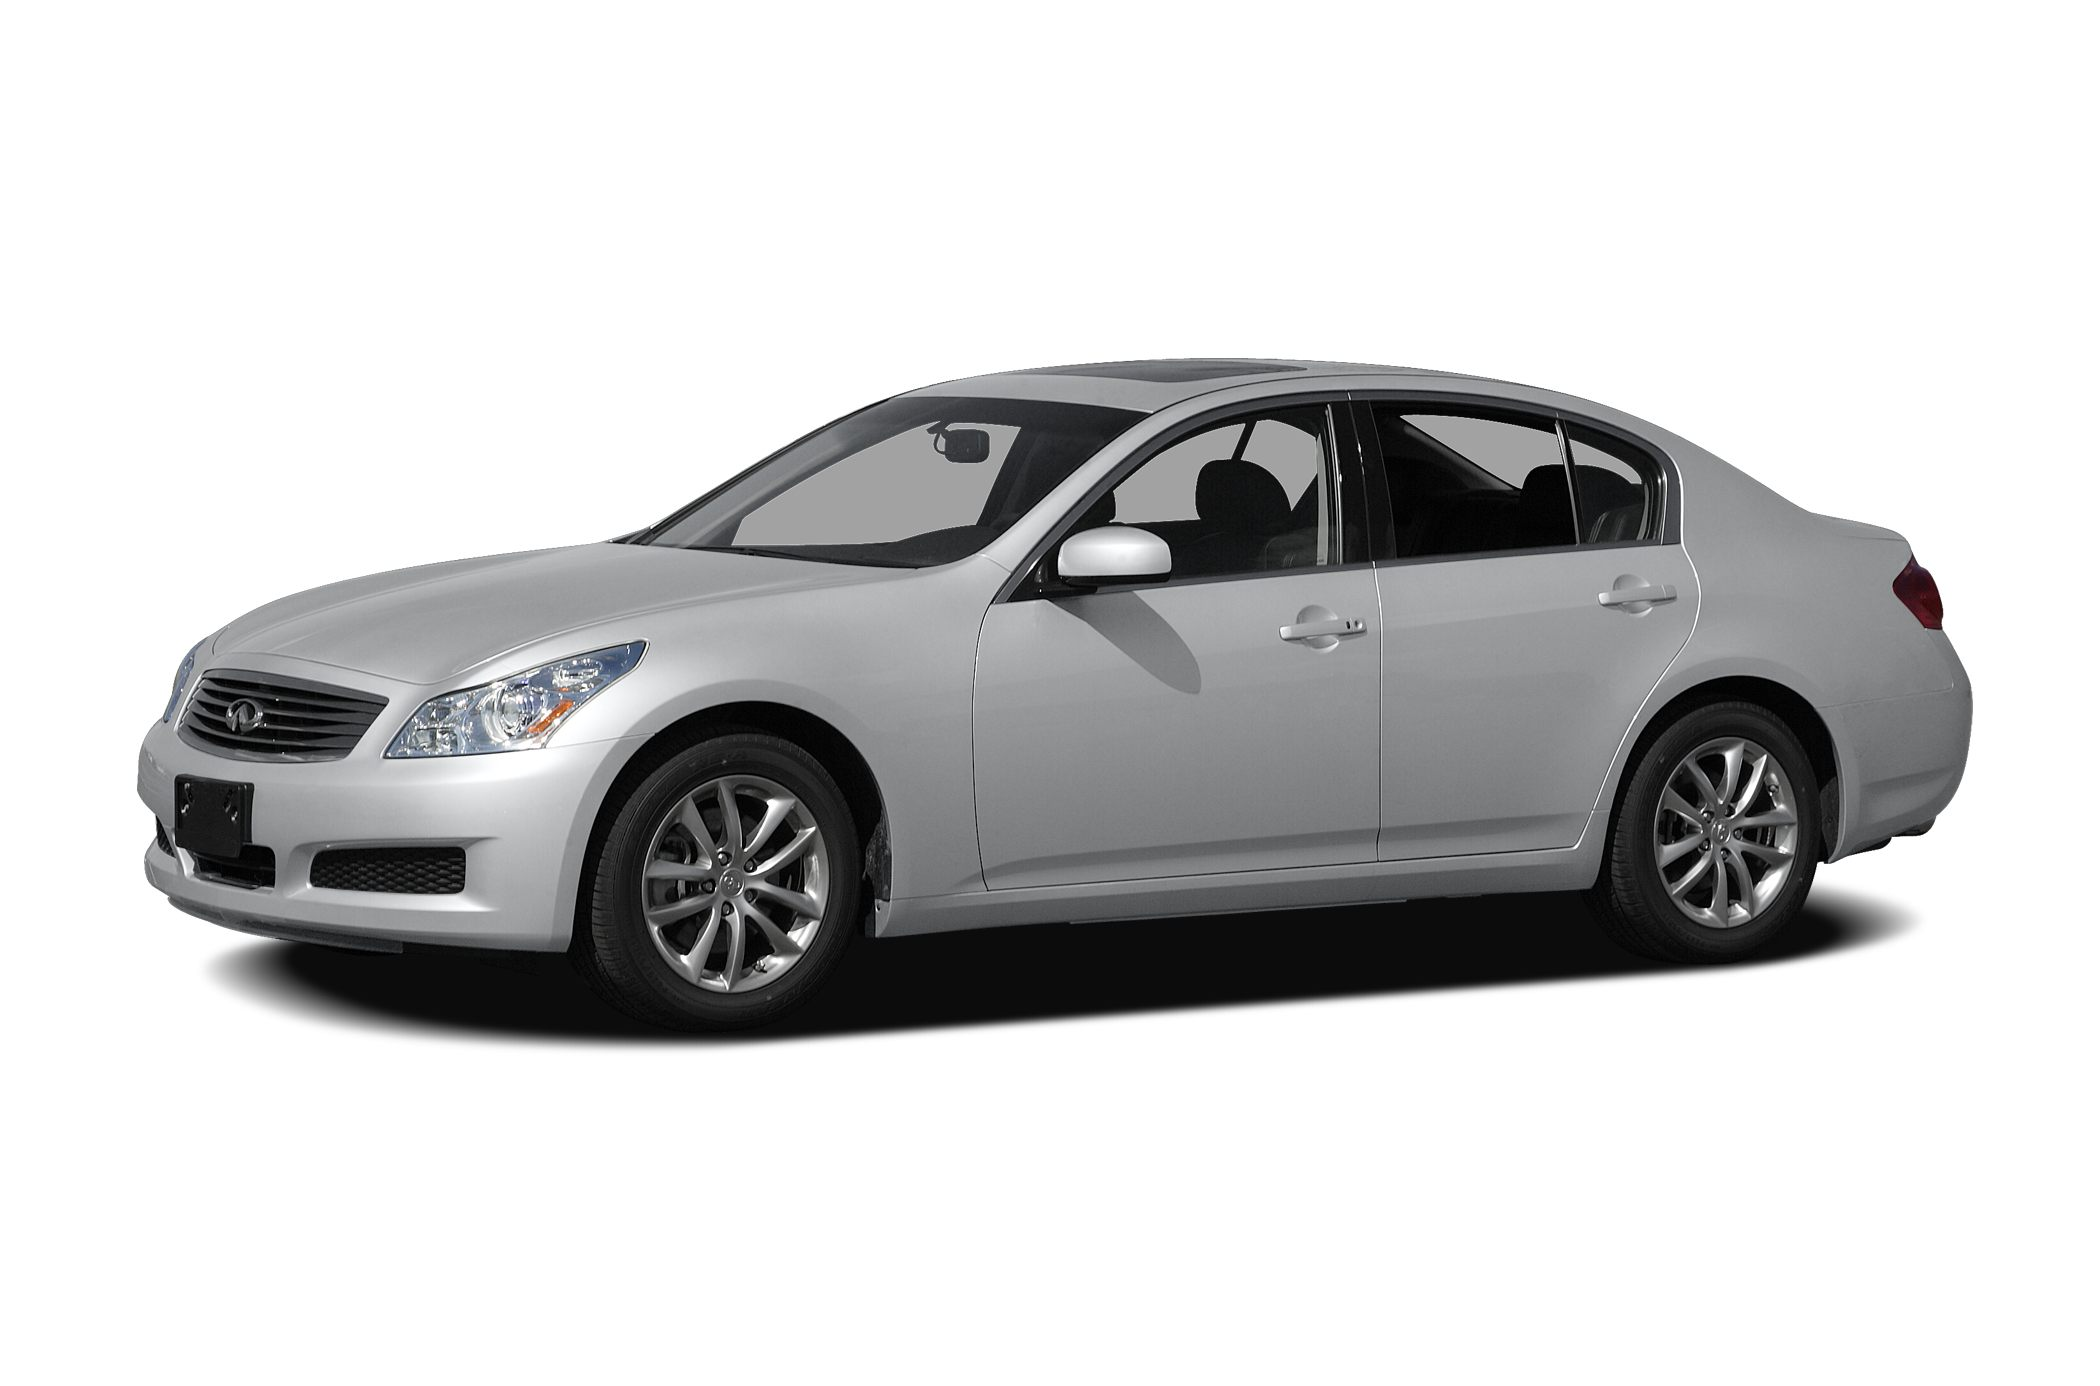 2007 Infiniti G35 Sport Sedan for sale in Waxahachie for $12,995 with 110,456 miles